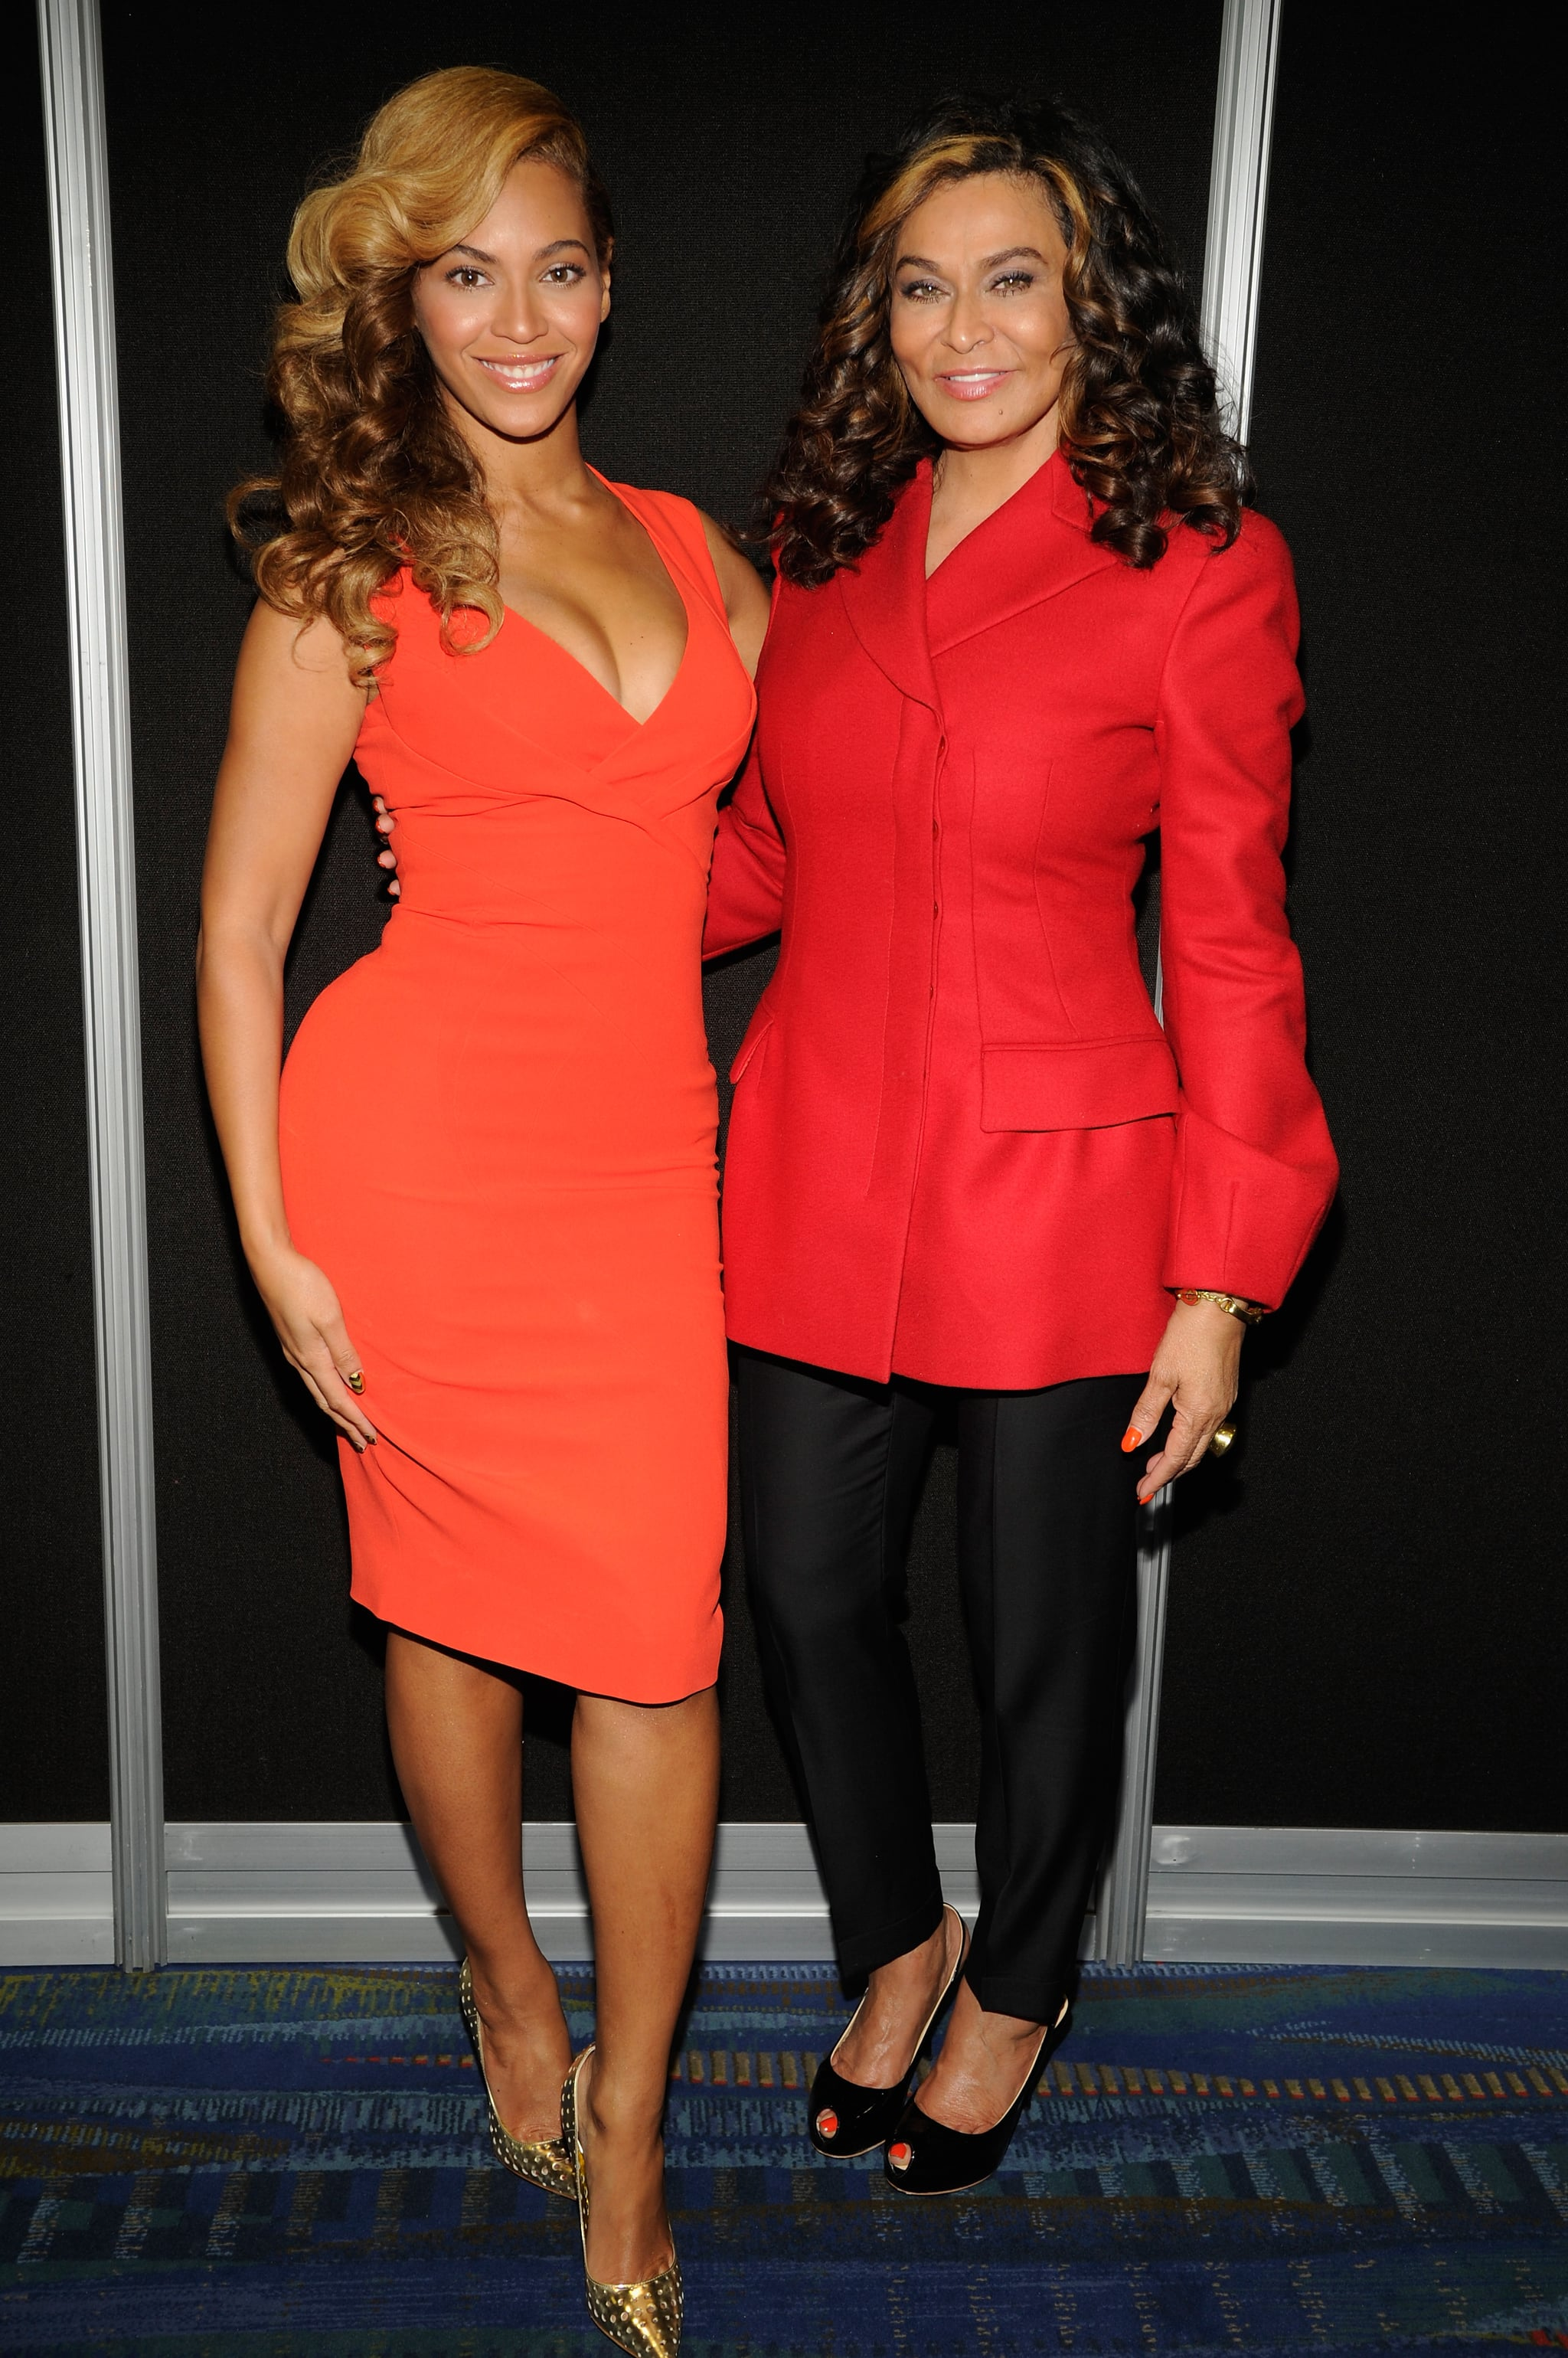 NEW ORLEANS, LA - JANUARY 31:  Beyonce and Tina Knowles pose backstage at the Pepsi Super Bowl XLVII Halftime Show Press Conference at the Ernest N. Morial Convention Centre on January 31, 2013 in New Orleans, Louisiana.  (Photo by Kevin Mazur/WireImage)